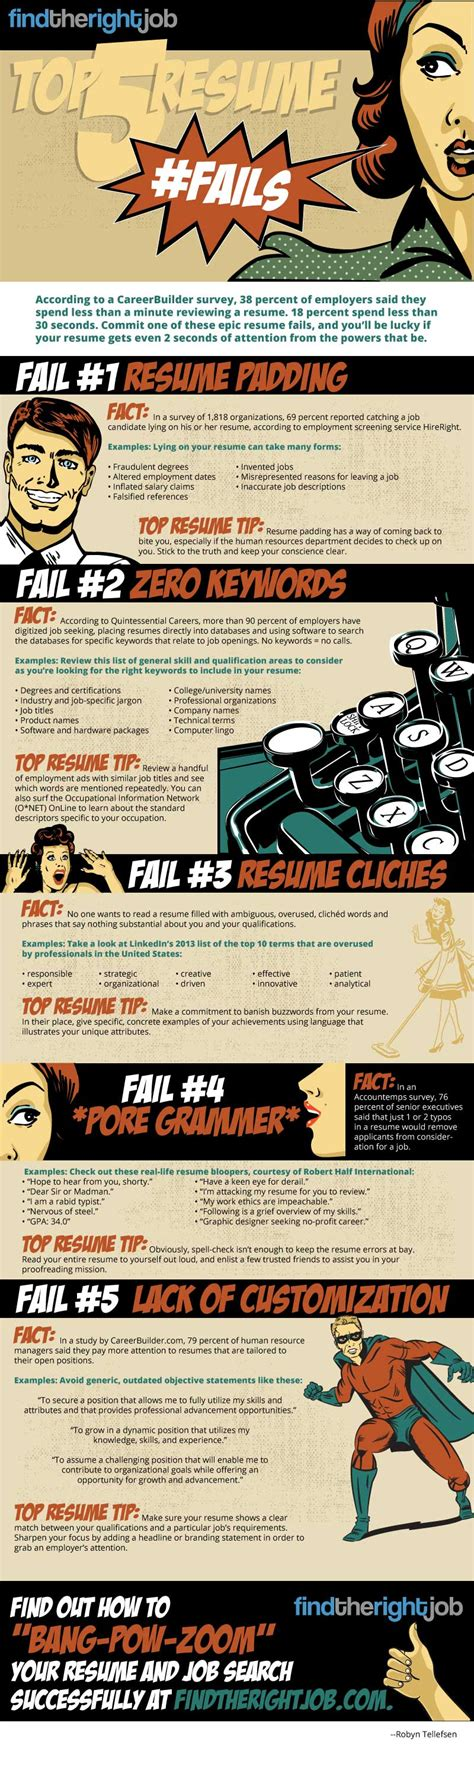 5 common resume mistakes and how to avoid them the muse